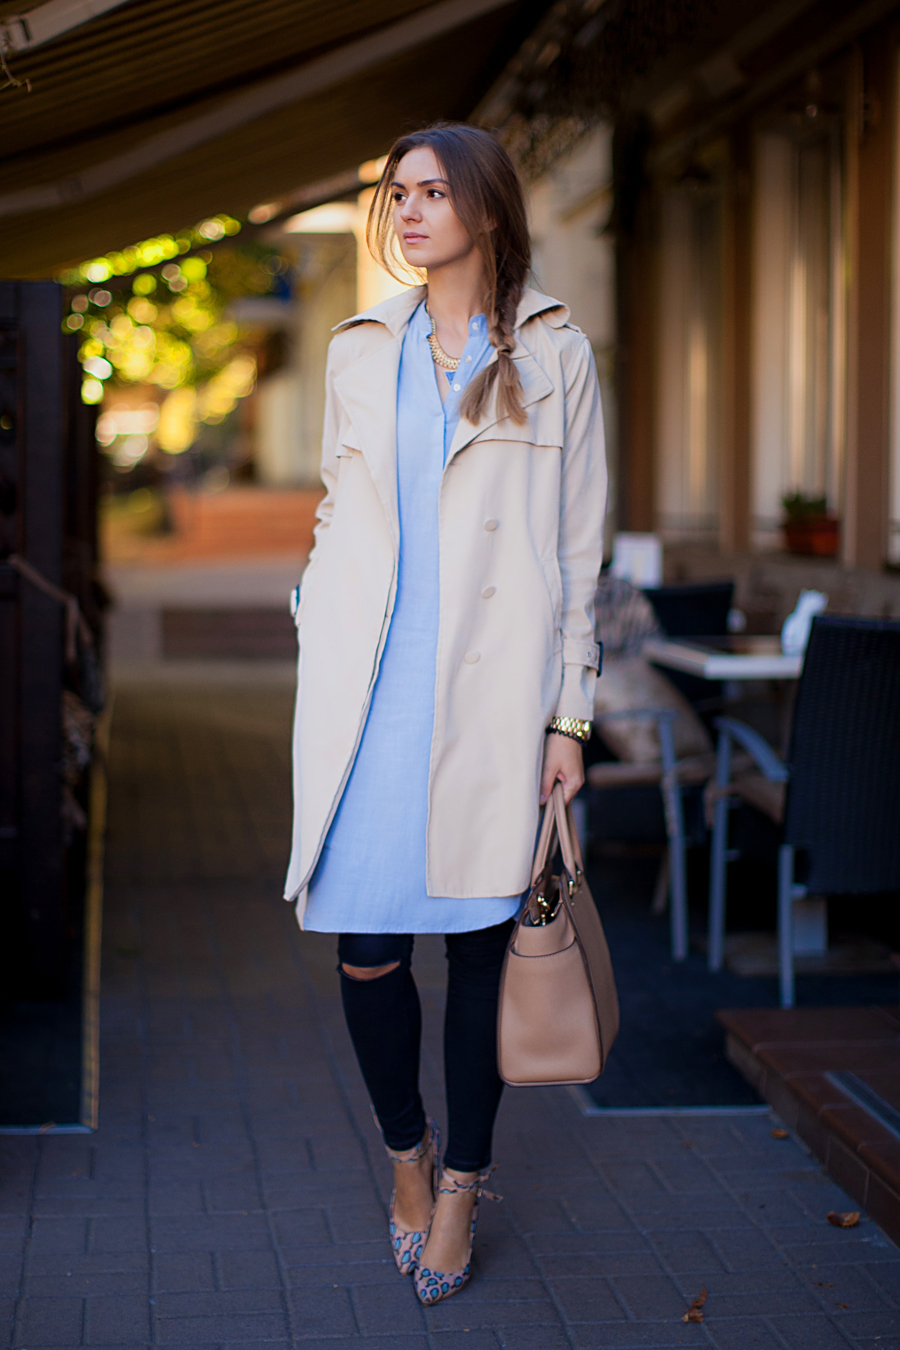 Nika Huk is wearing a trench coat from Chicwish, pale blue shirt dress from Chicnova, jeggings and shoes from Asos and the bag is from Michael Kors